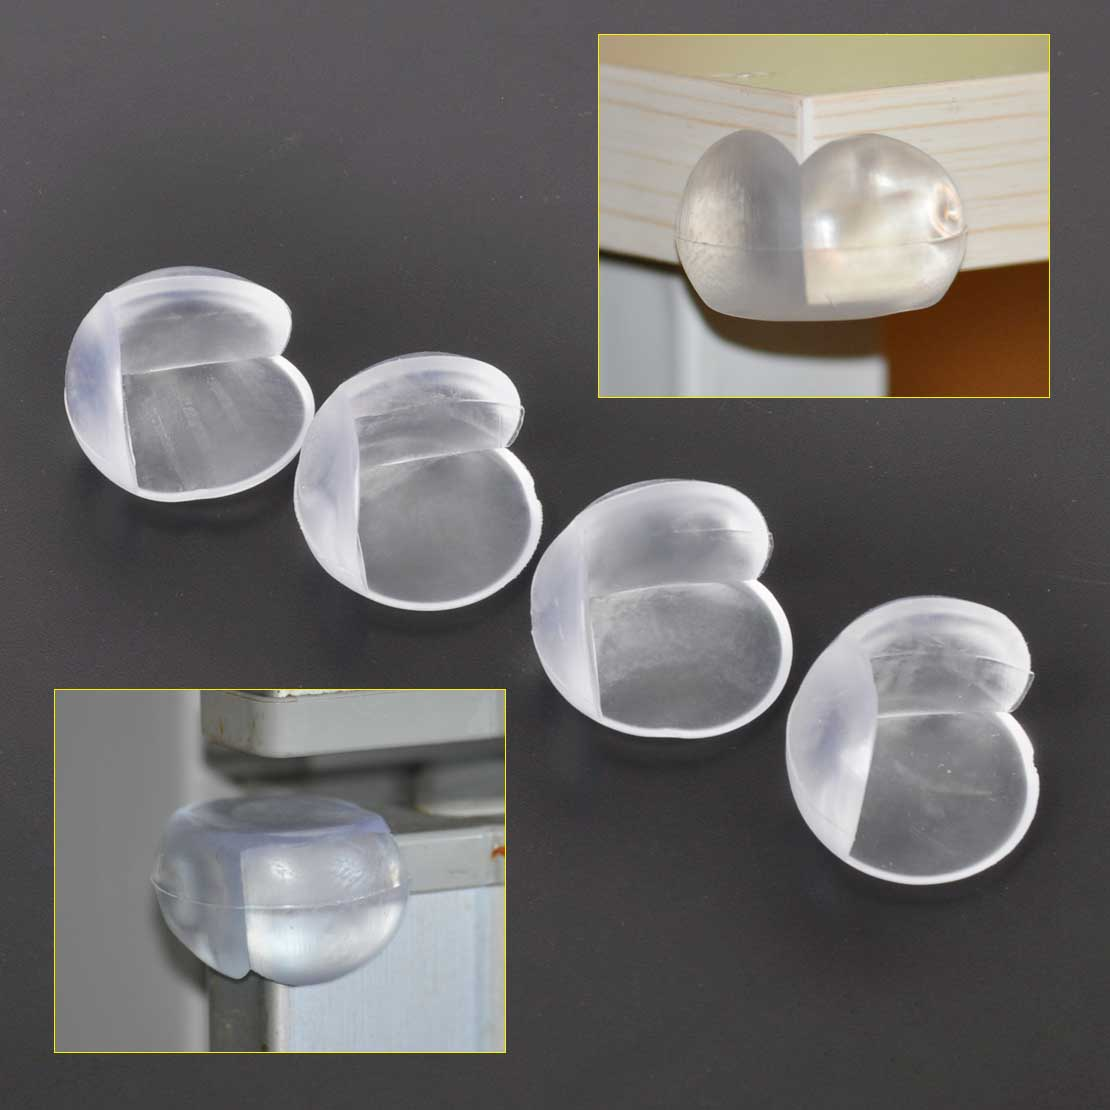 SOFT PVC BABY SAFETY CORNER CUSHIONS DESK TABLE COVERS PROTECTORS BALLS PADS 3CM